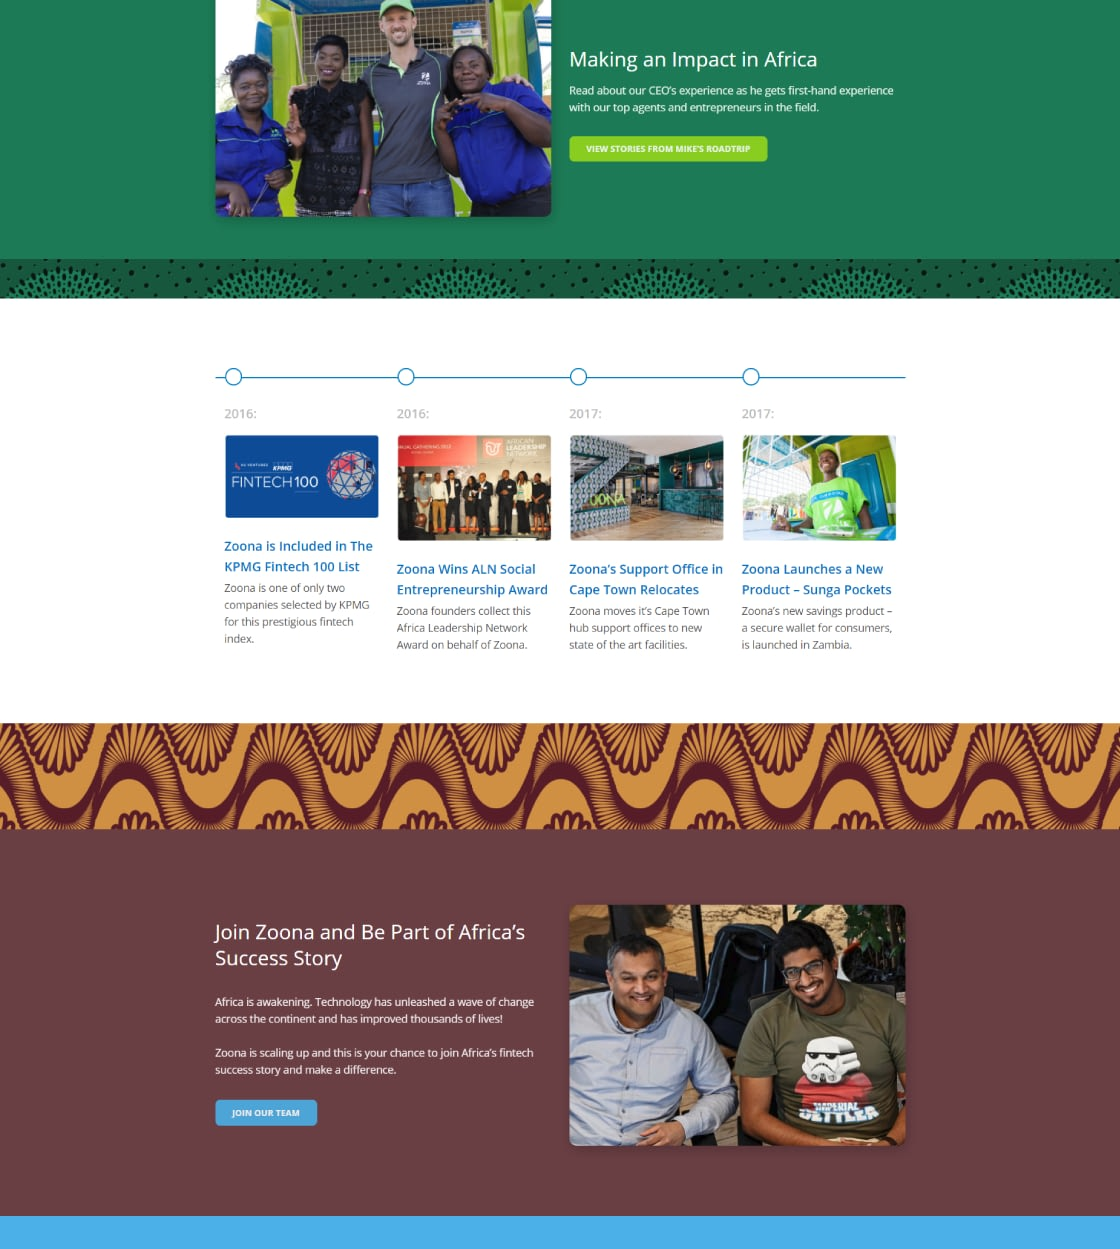 Website Design for African Fintech Startup Zoona - Business History Page UI Showcase